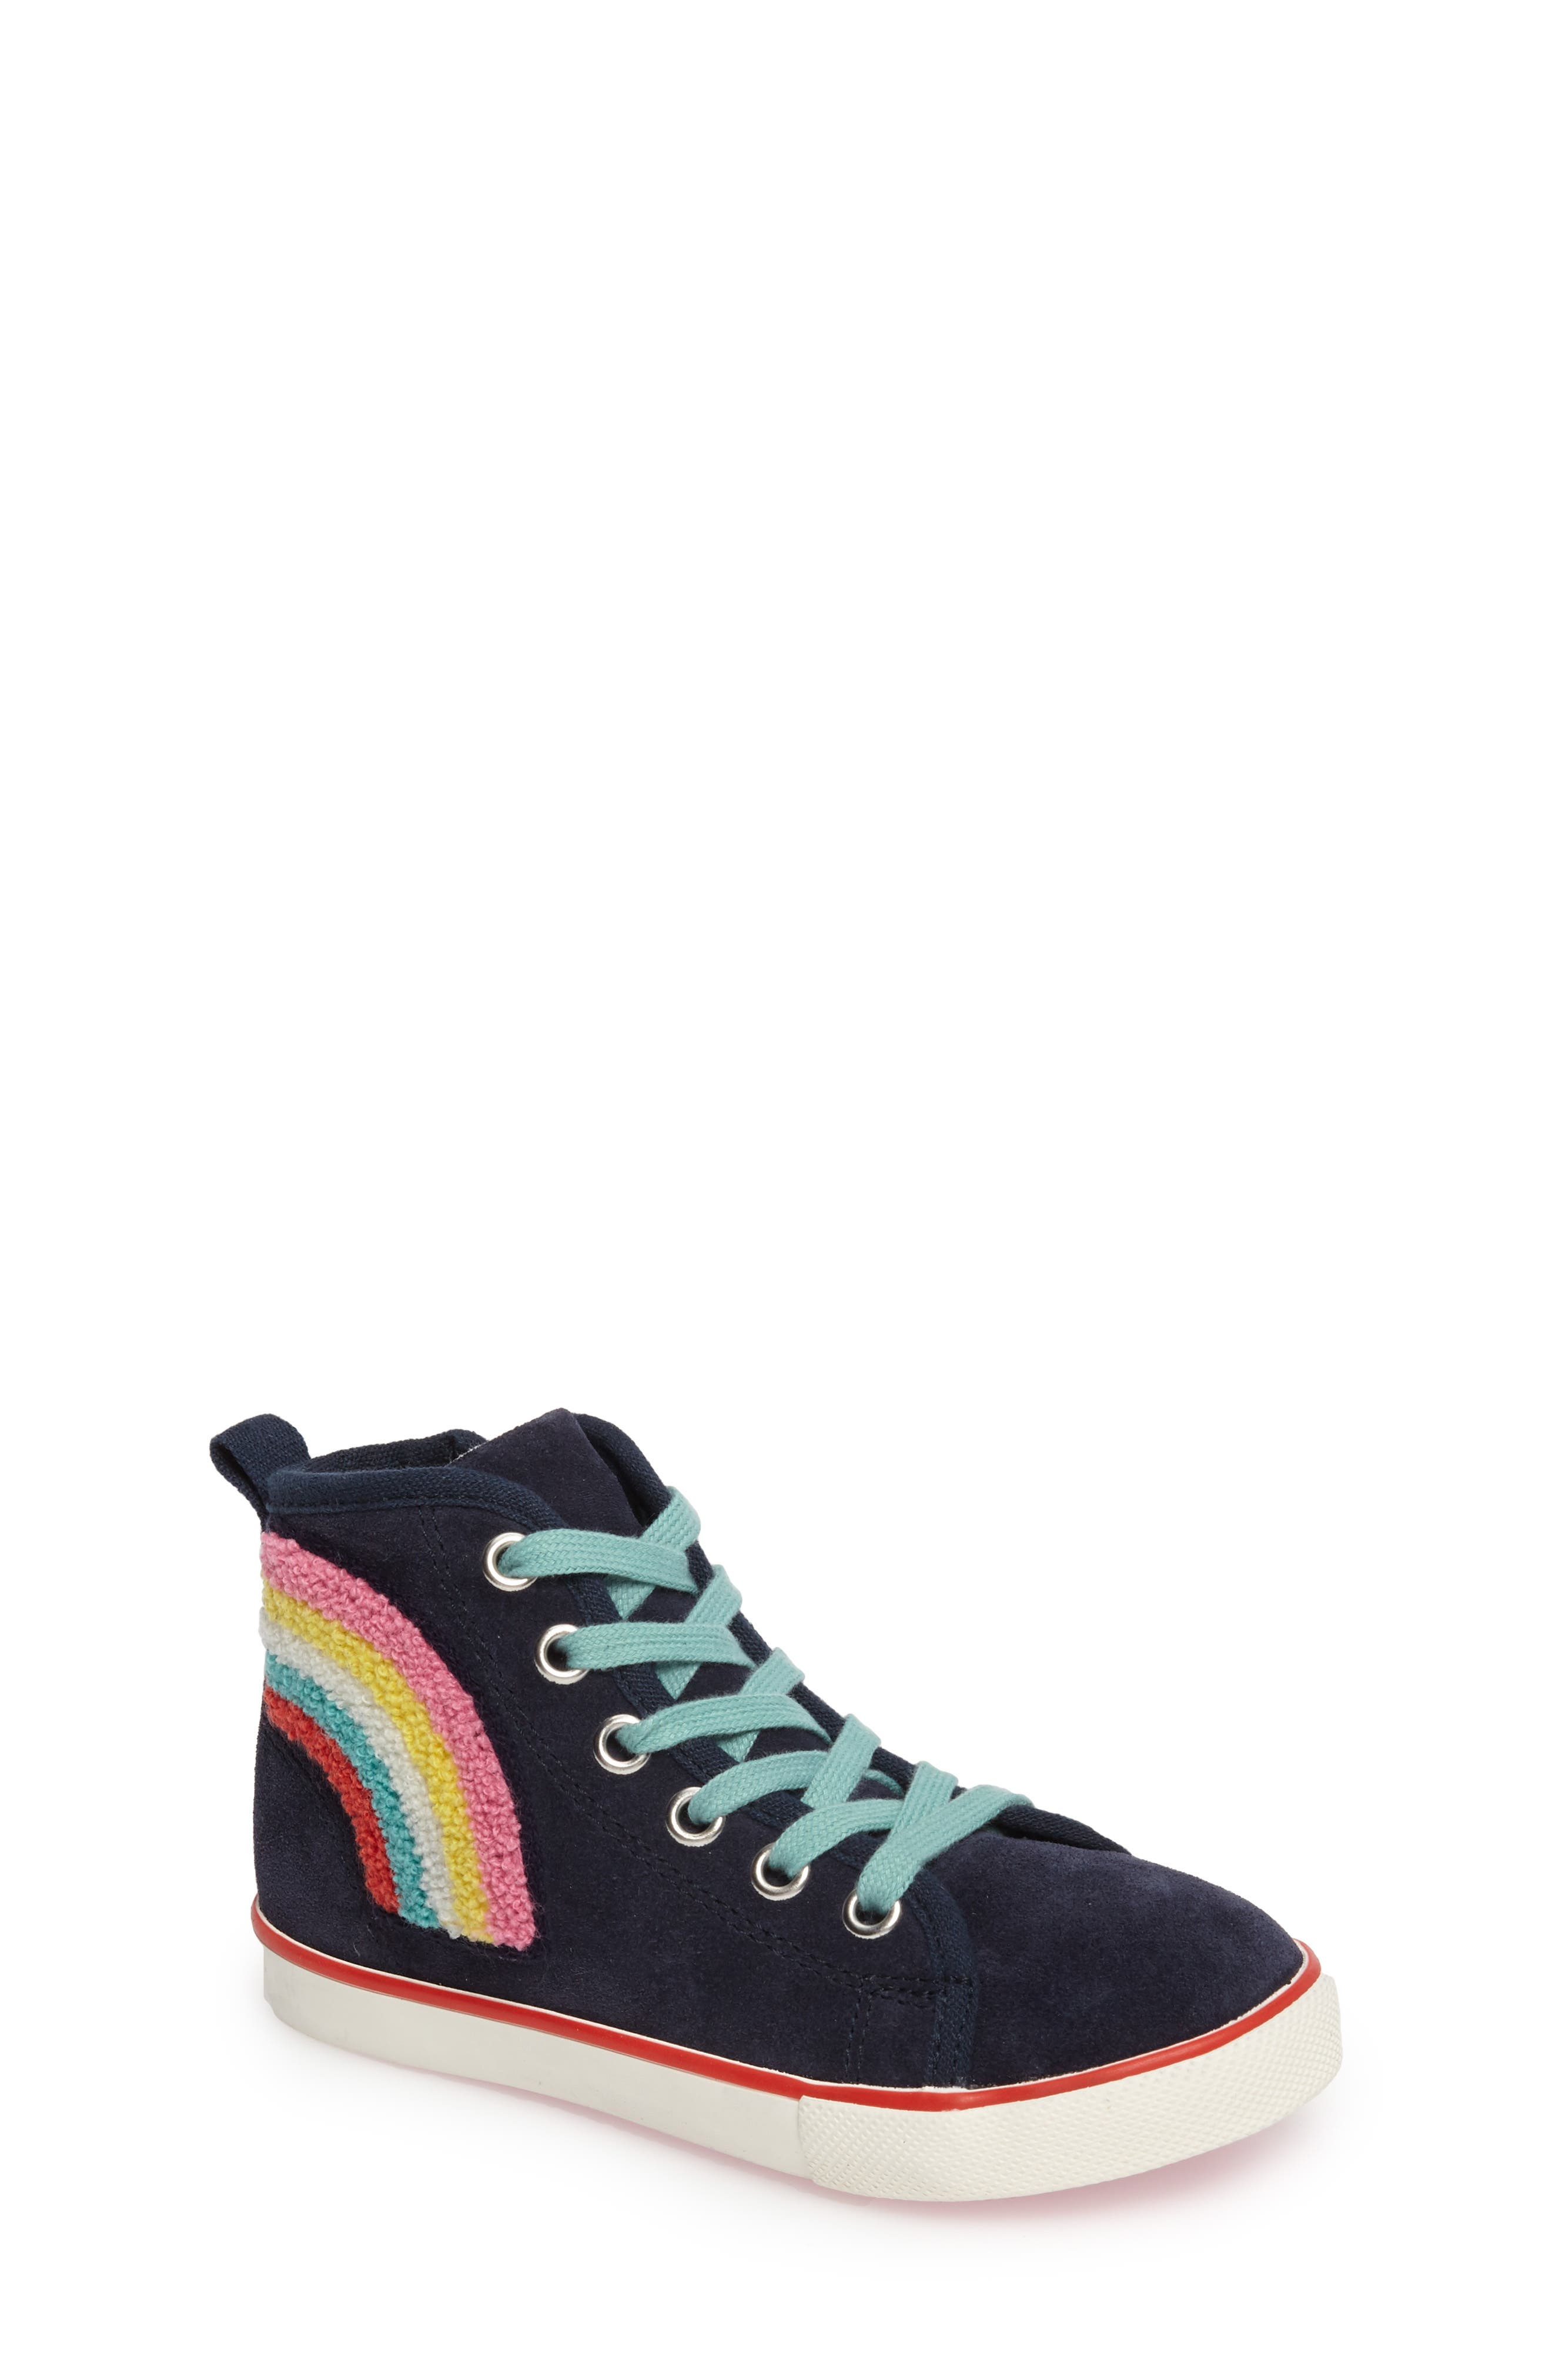 Mini Boden Embellished High Top Sneaker (Toddler, Little Kid & Big Kid)